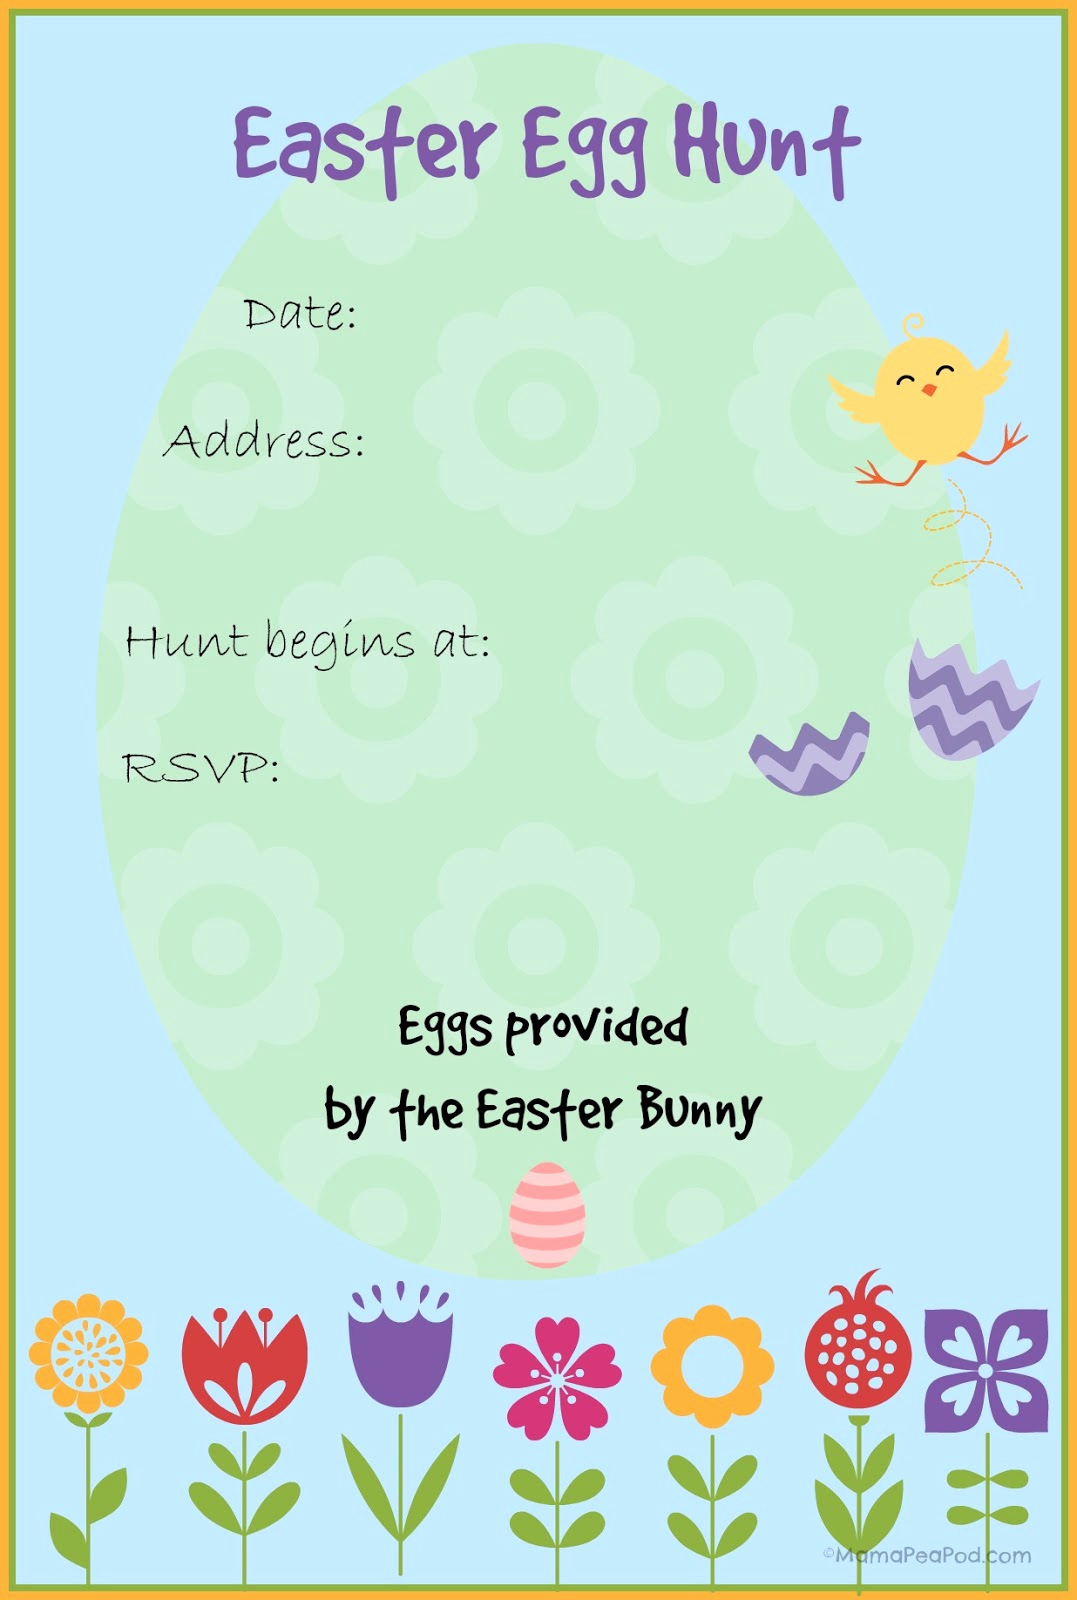 Easter Egg Hunt Invitation Luxury Mama Pea Pod